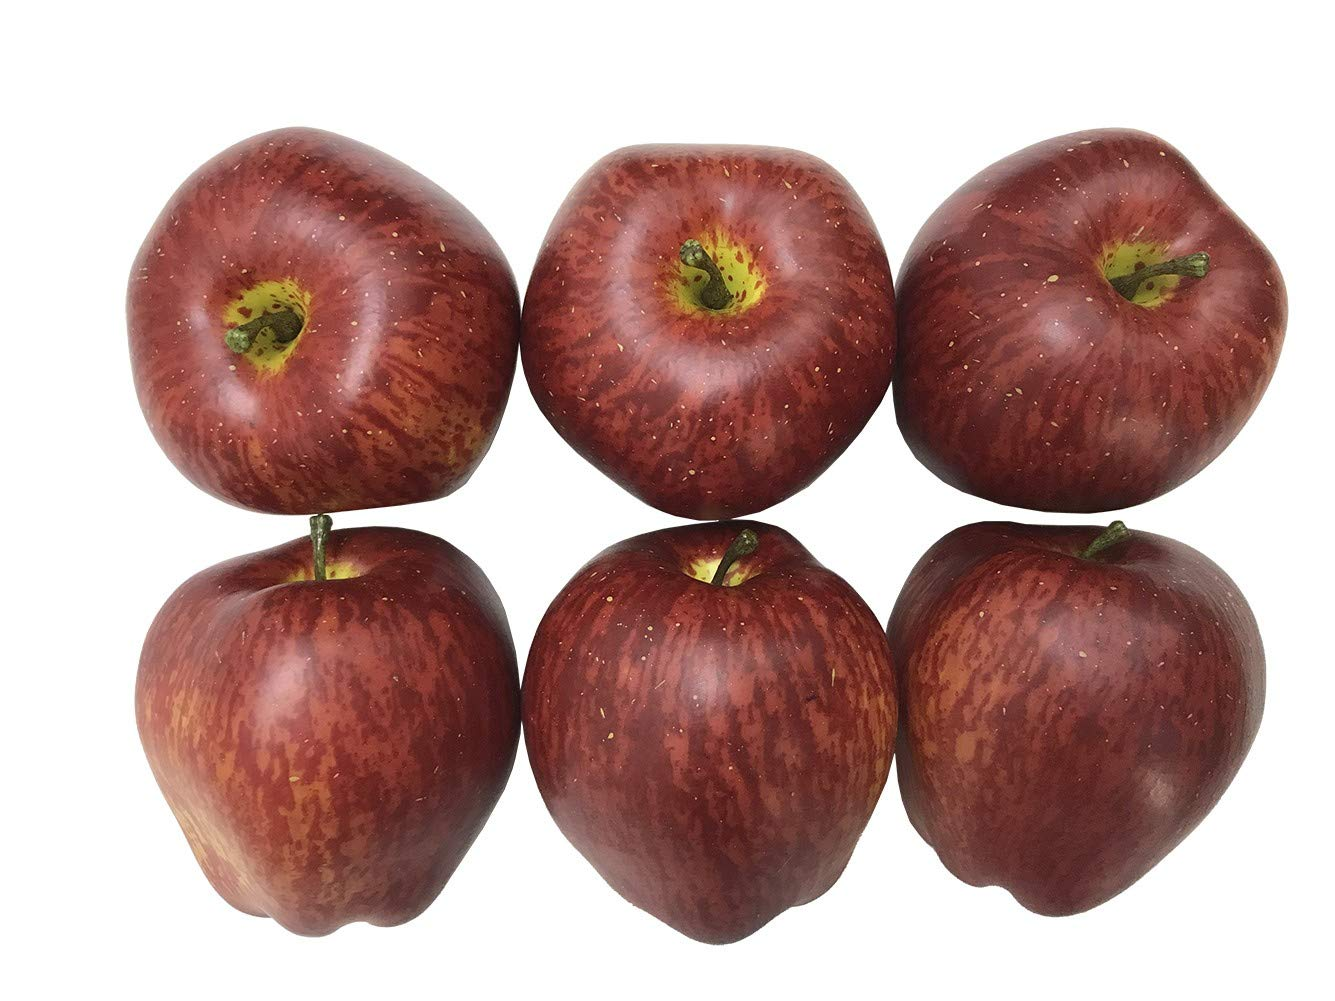 Lifelike Artificial Green Apples Simulation Faux Fake Apple Decorative Fruits Home House Table Display 6 Pack Arflo